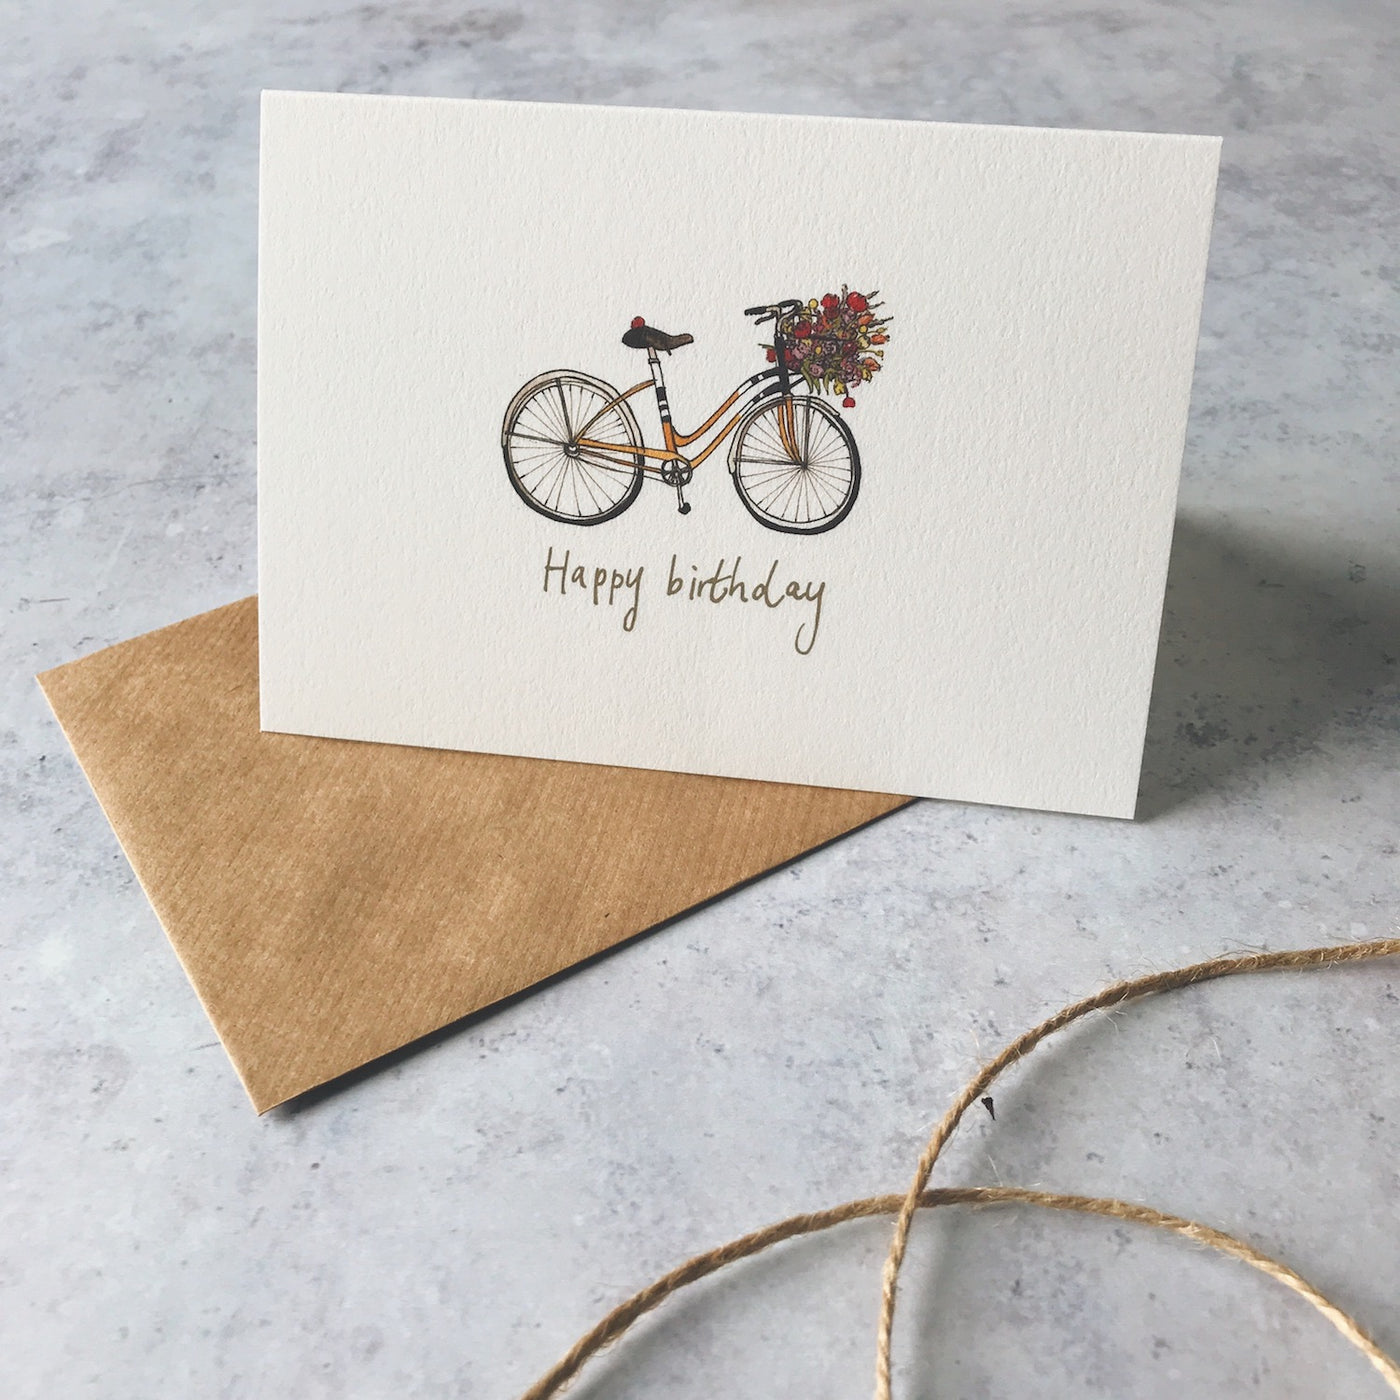 Annie Brougham, illustrated greeting card, happy birthday, floral bicycle